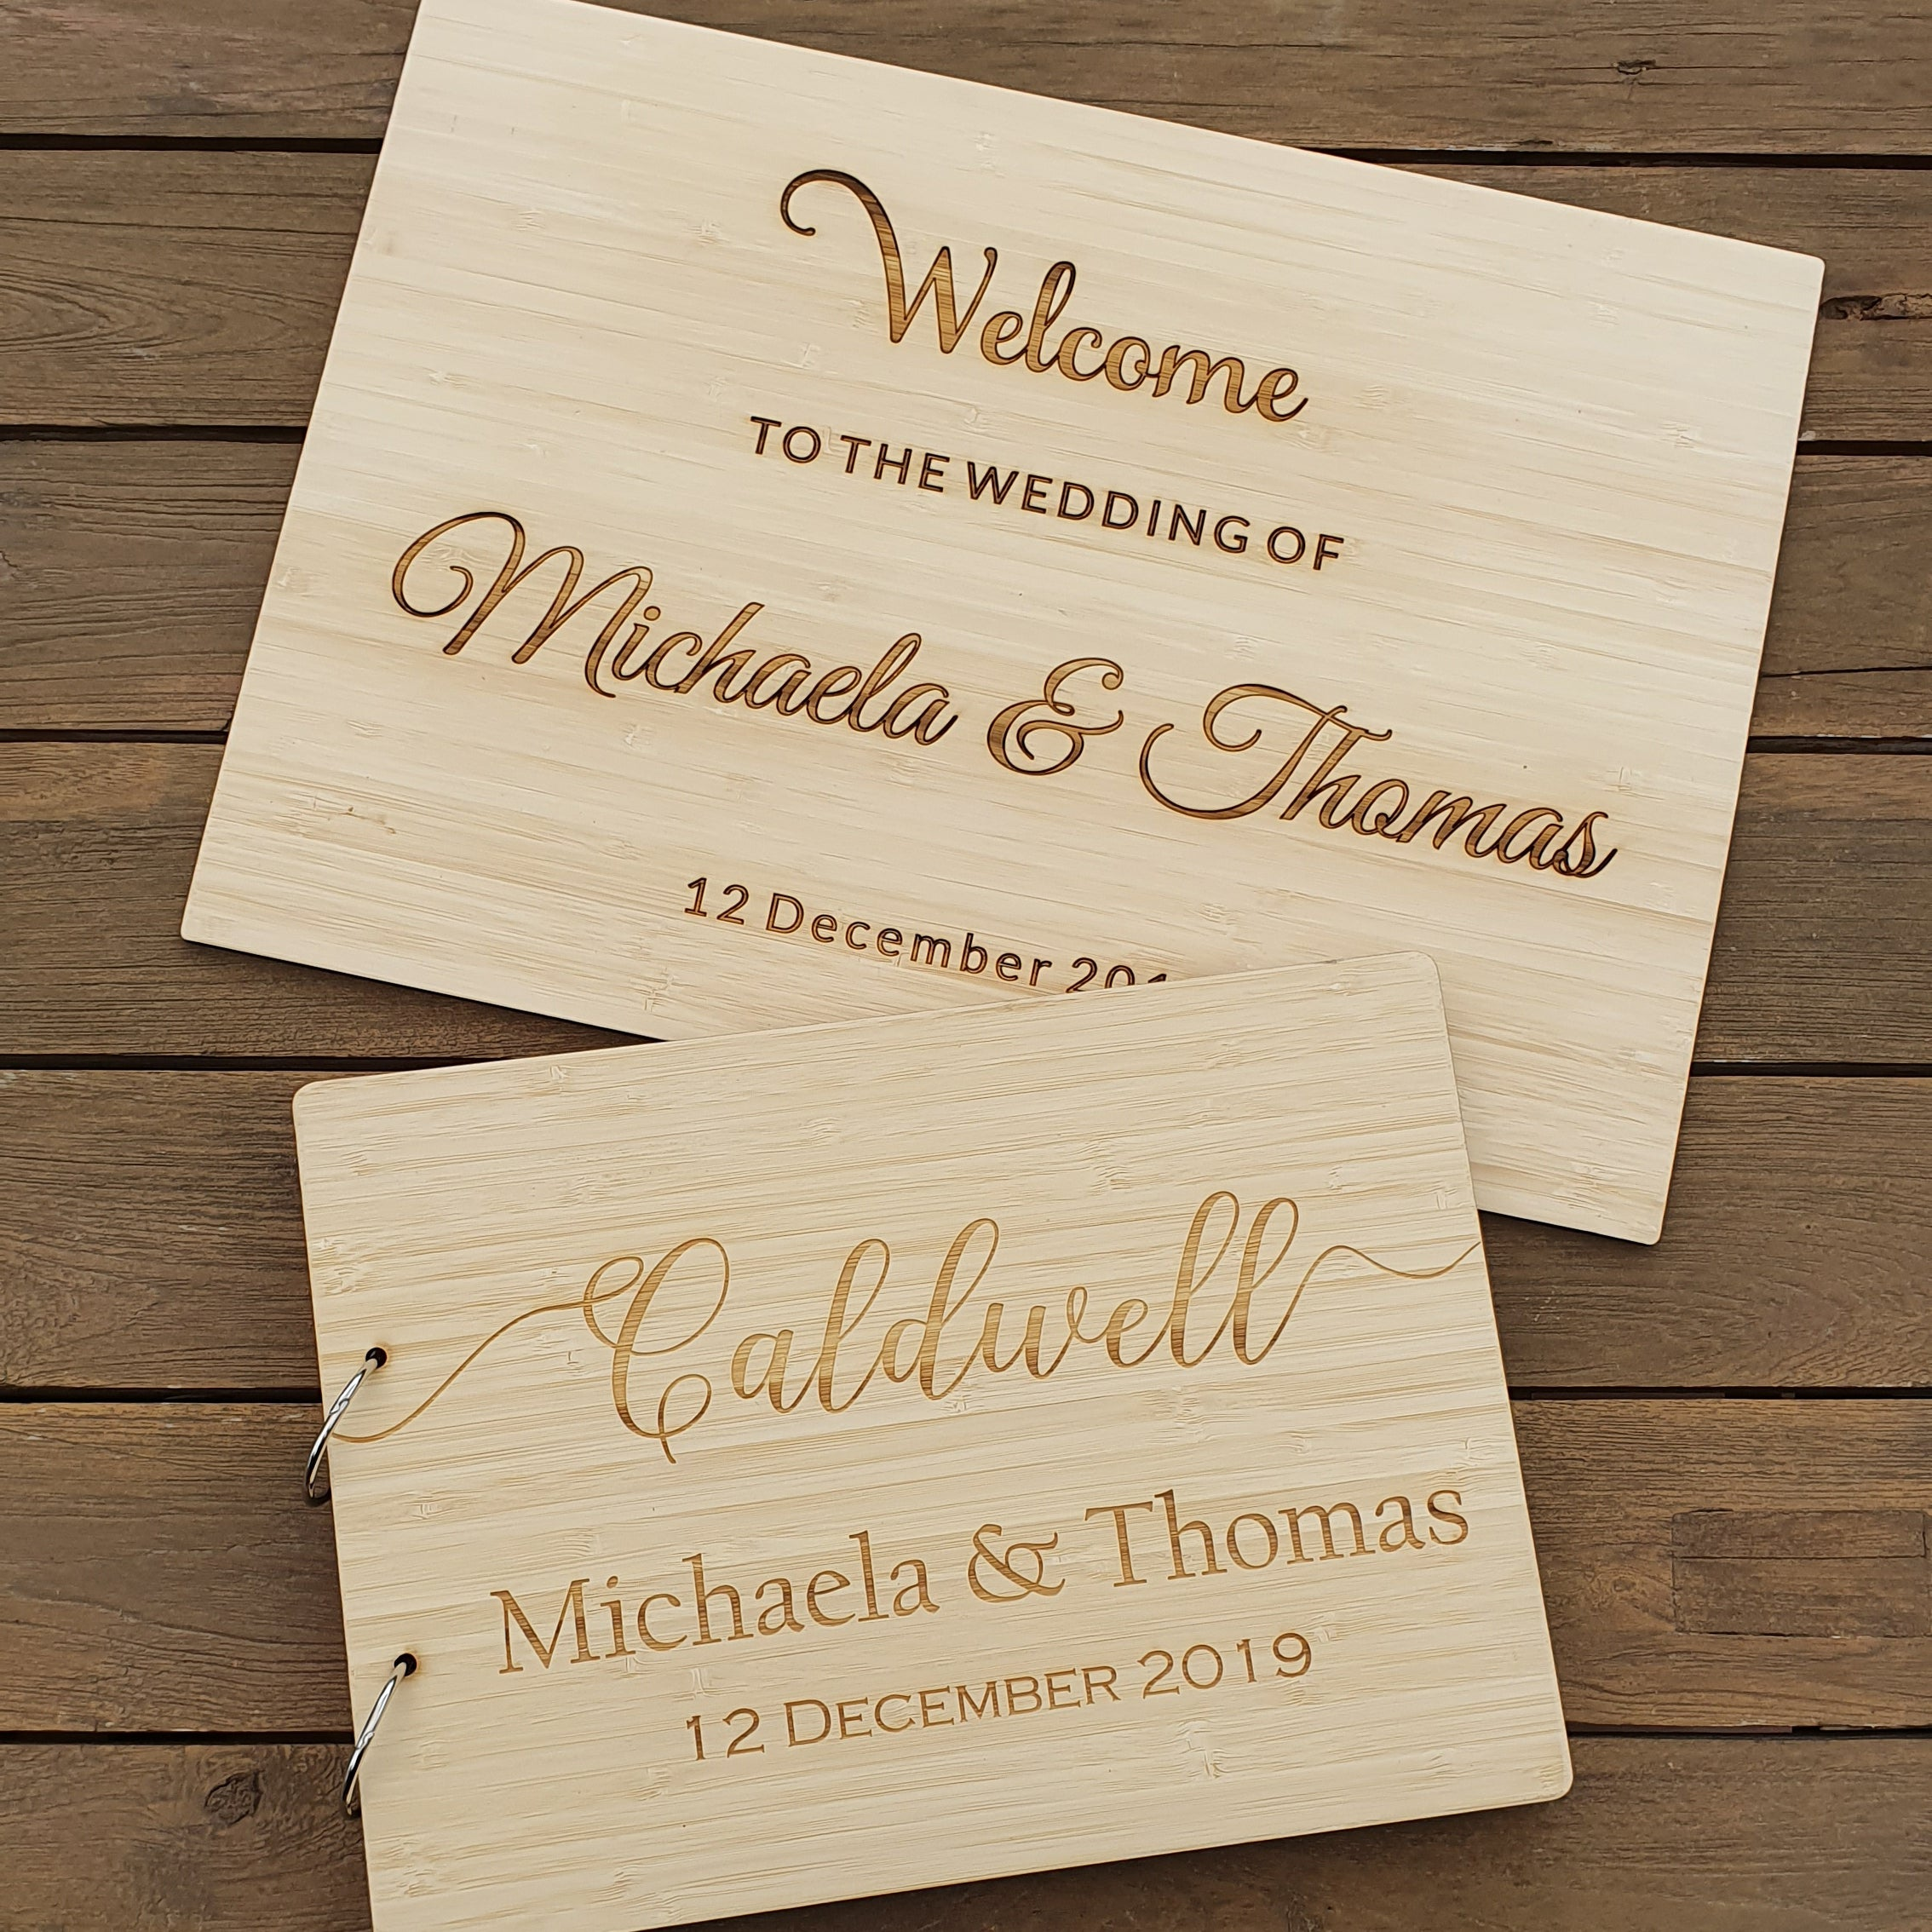 Hardwood Signs - From $30